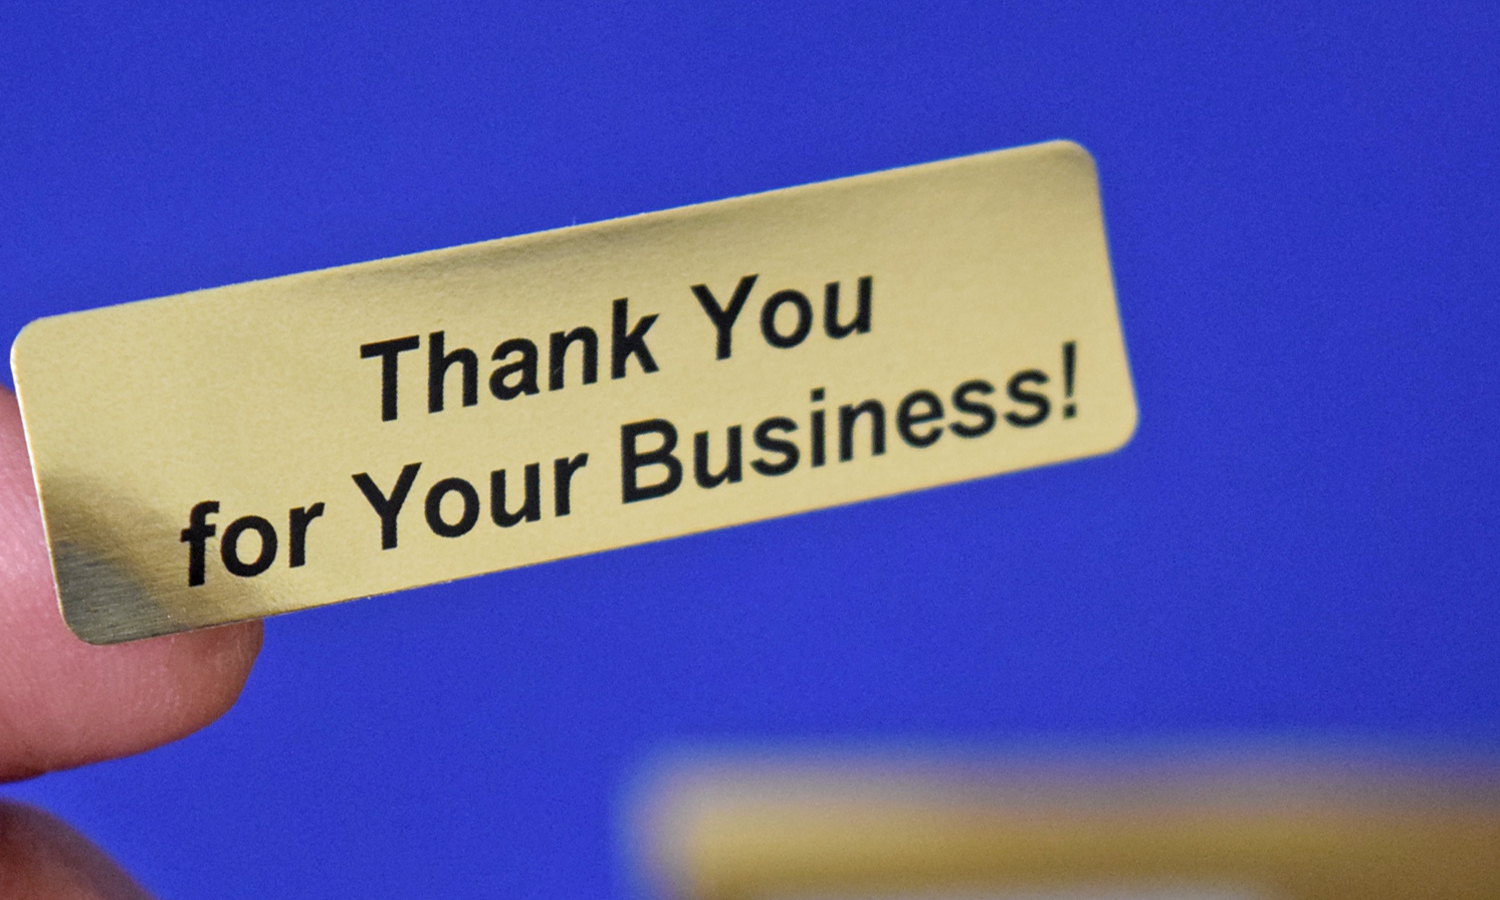 Thank you for your business gold foil 400 label stickers tyfybg